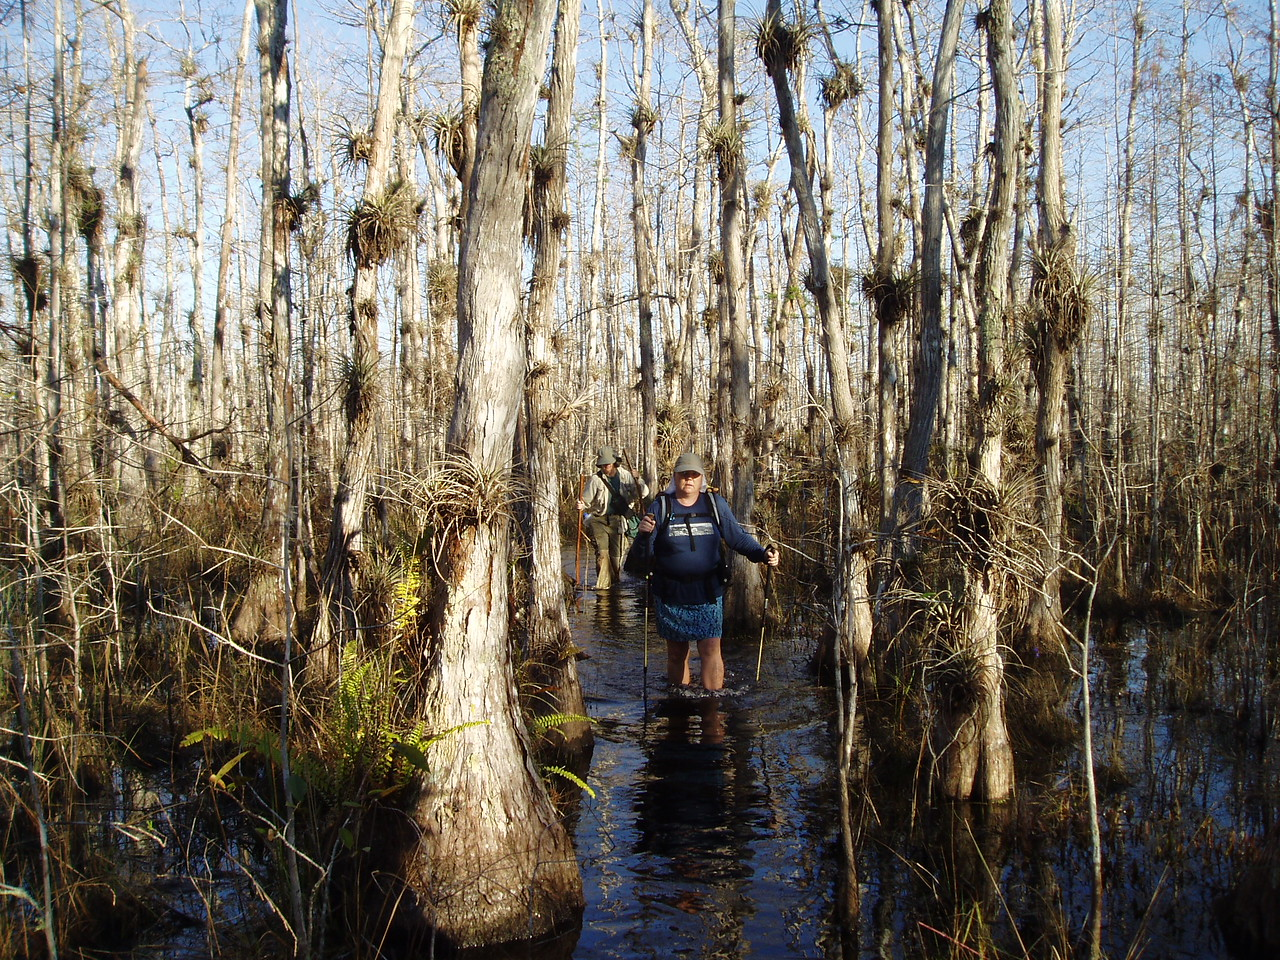 Backpacking Big Cypress<br /> location: Big Cypress National Preserve<br /> PHOTO CREDIT: Robert Coveney / Florida Trail Association